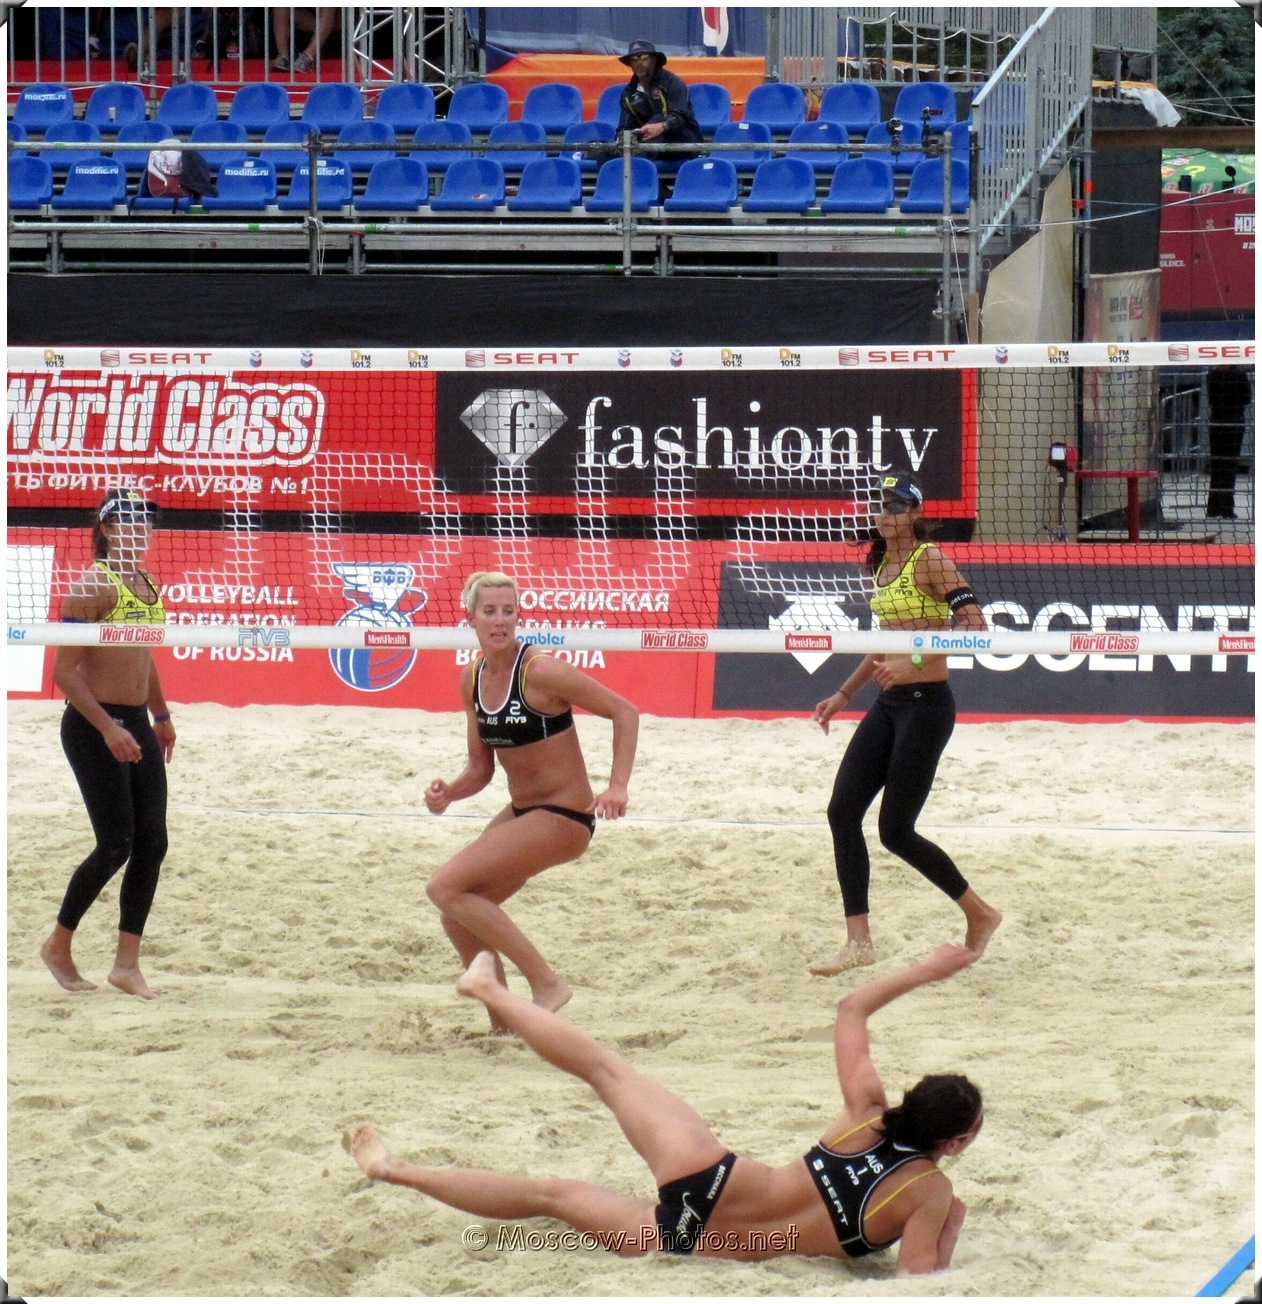 BEACH VOLLEYBALL RYTHM OF THE GAME